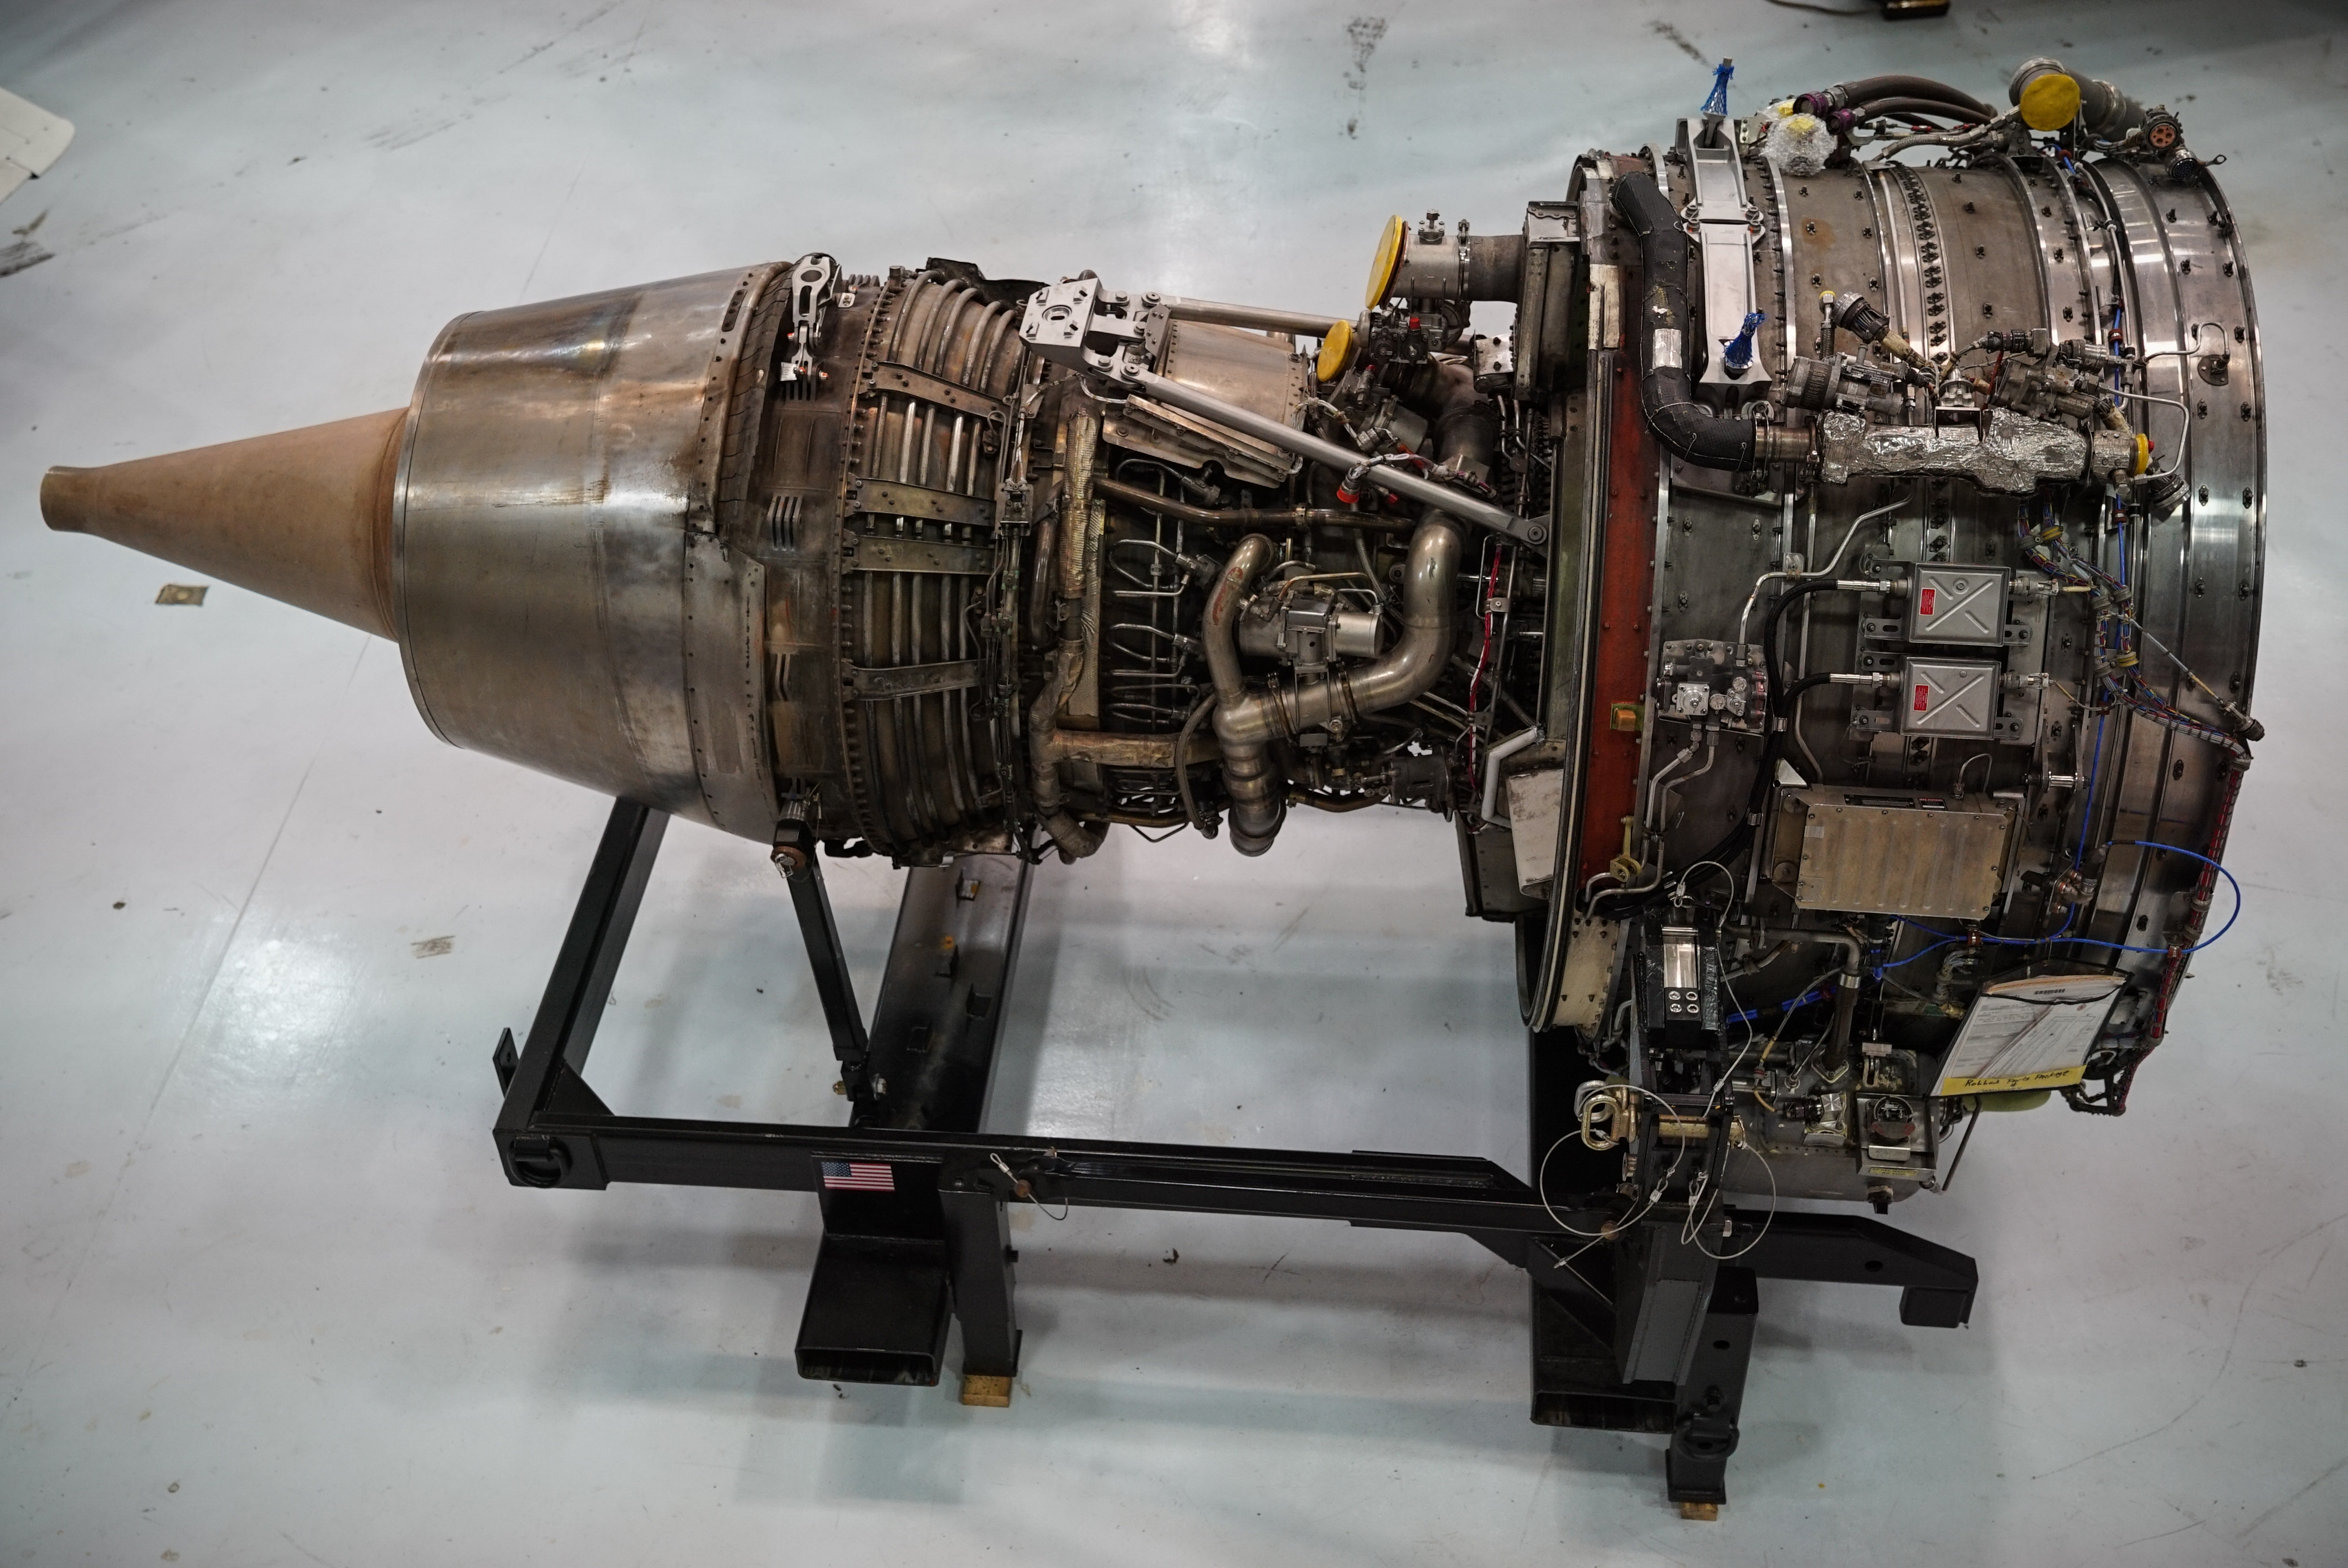 Massive Airplane Engine donated to MTSU by Southwest Airlines